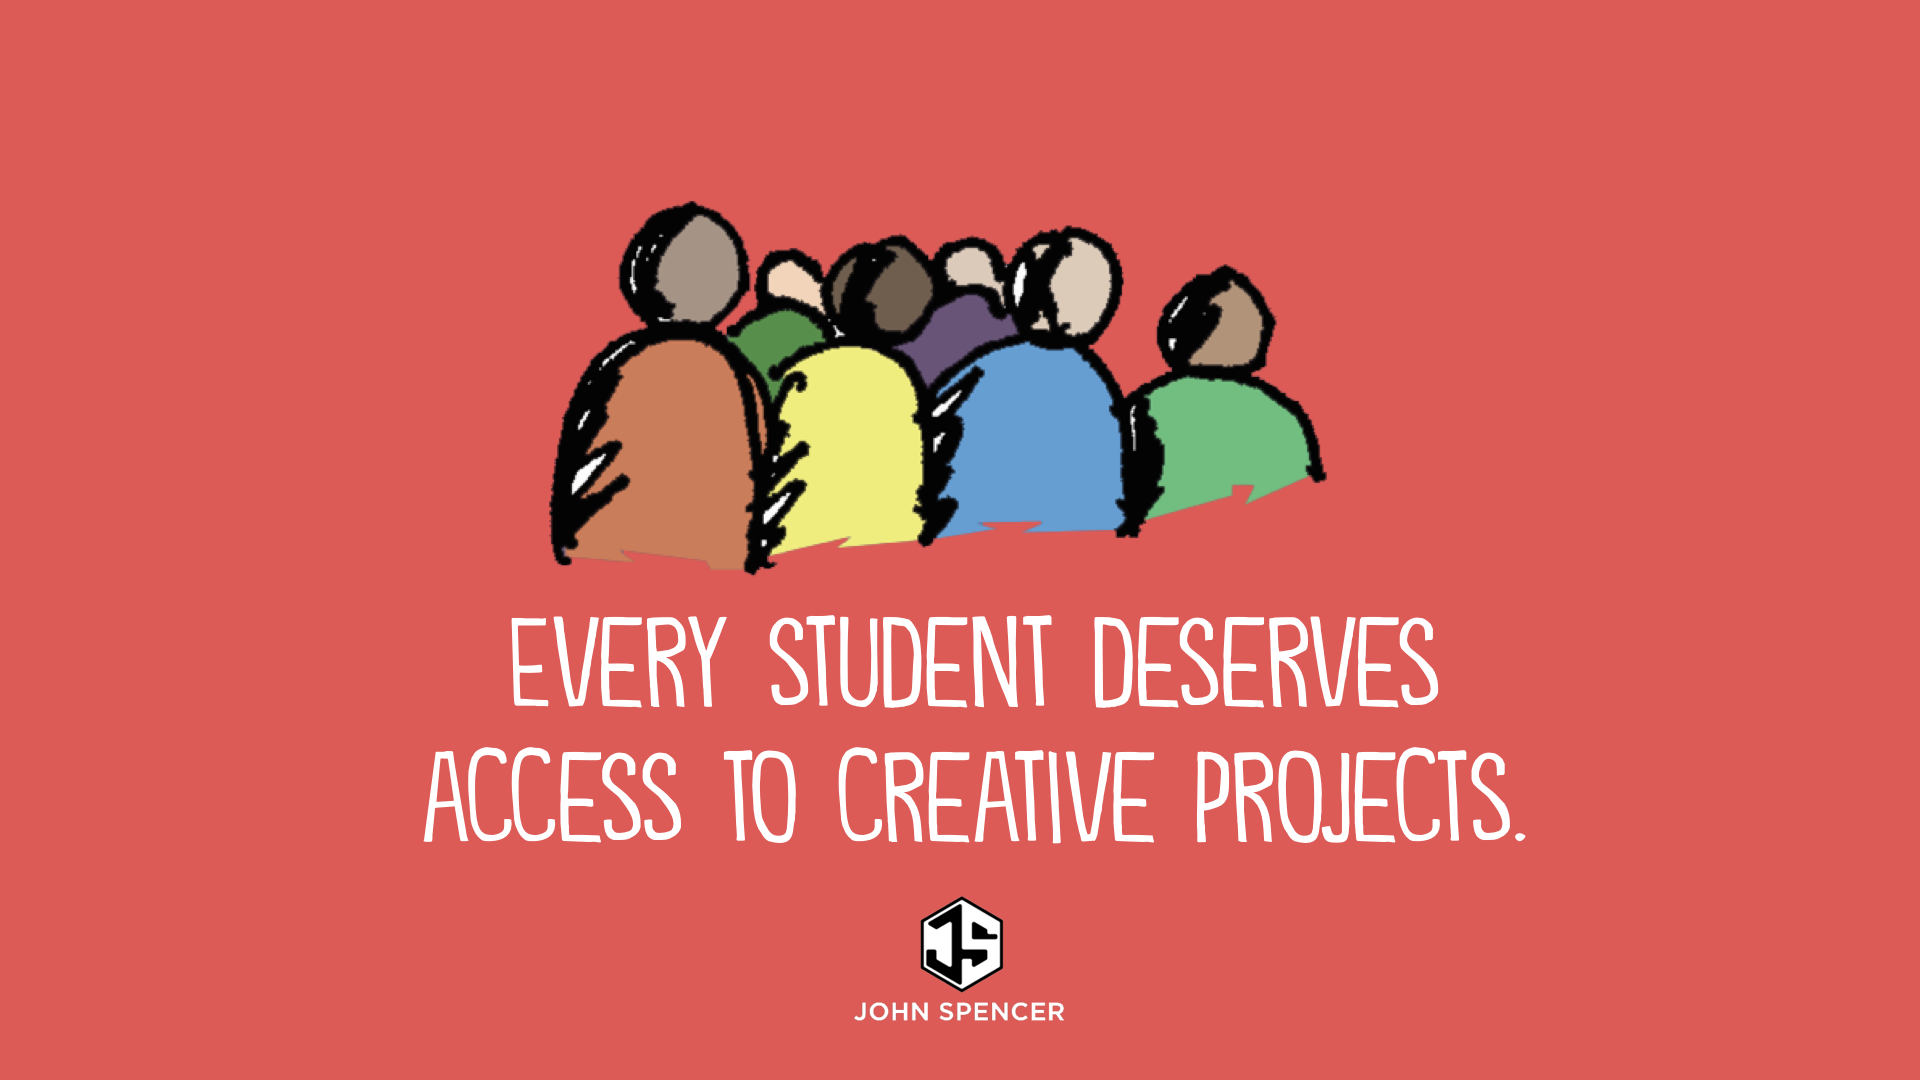 Every Student Deserves Access to Creative Projects